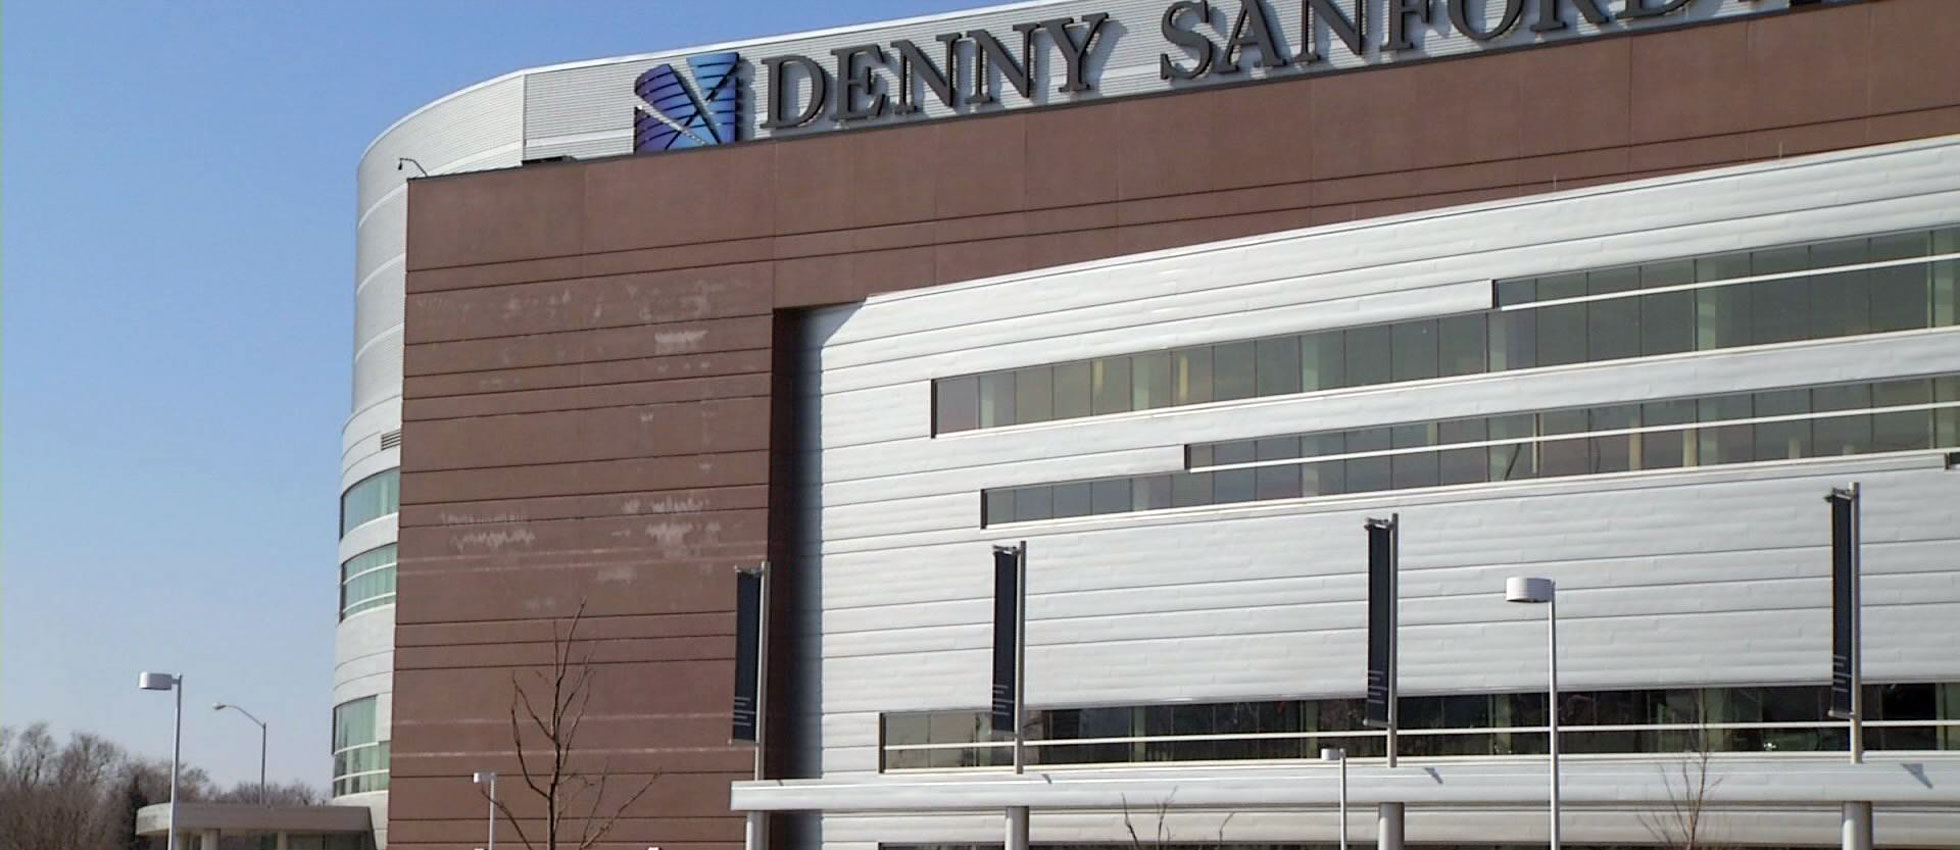 Fans react to events center salt stains